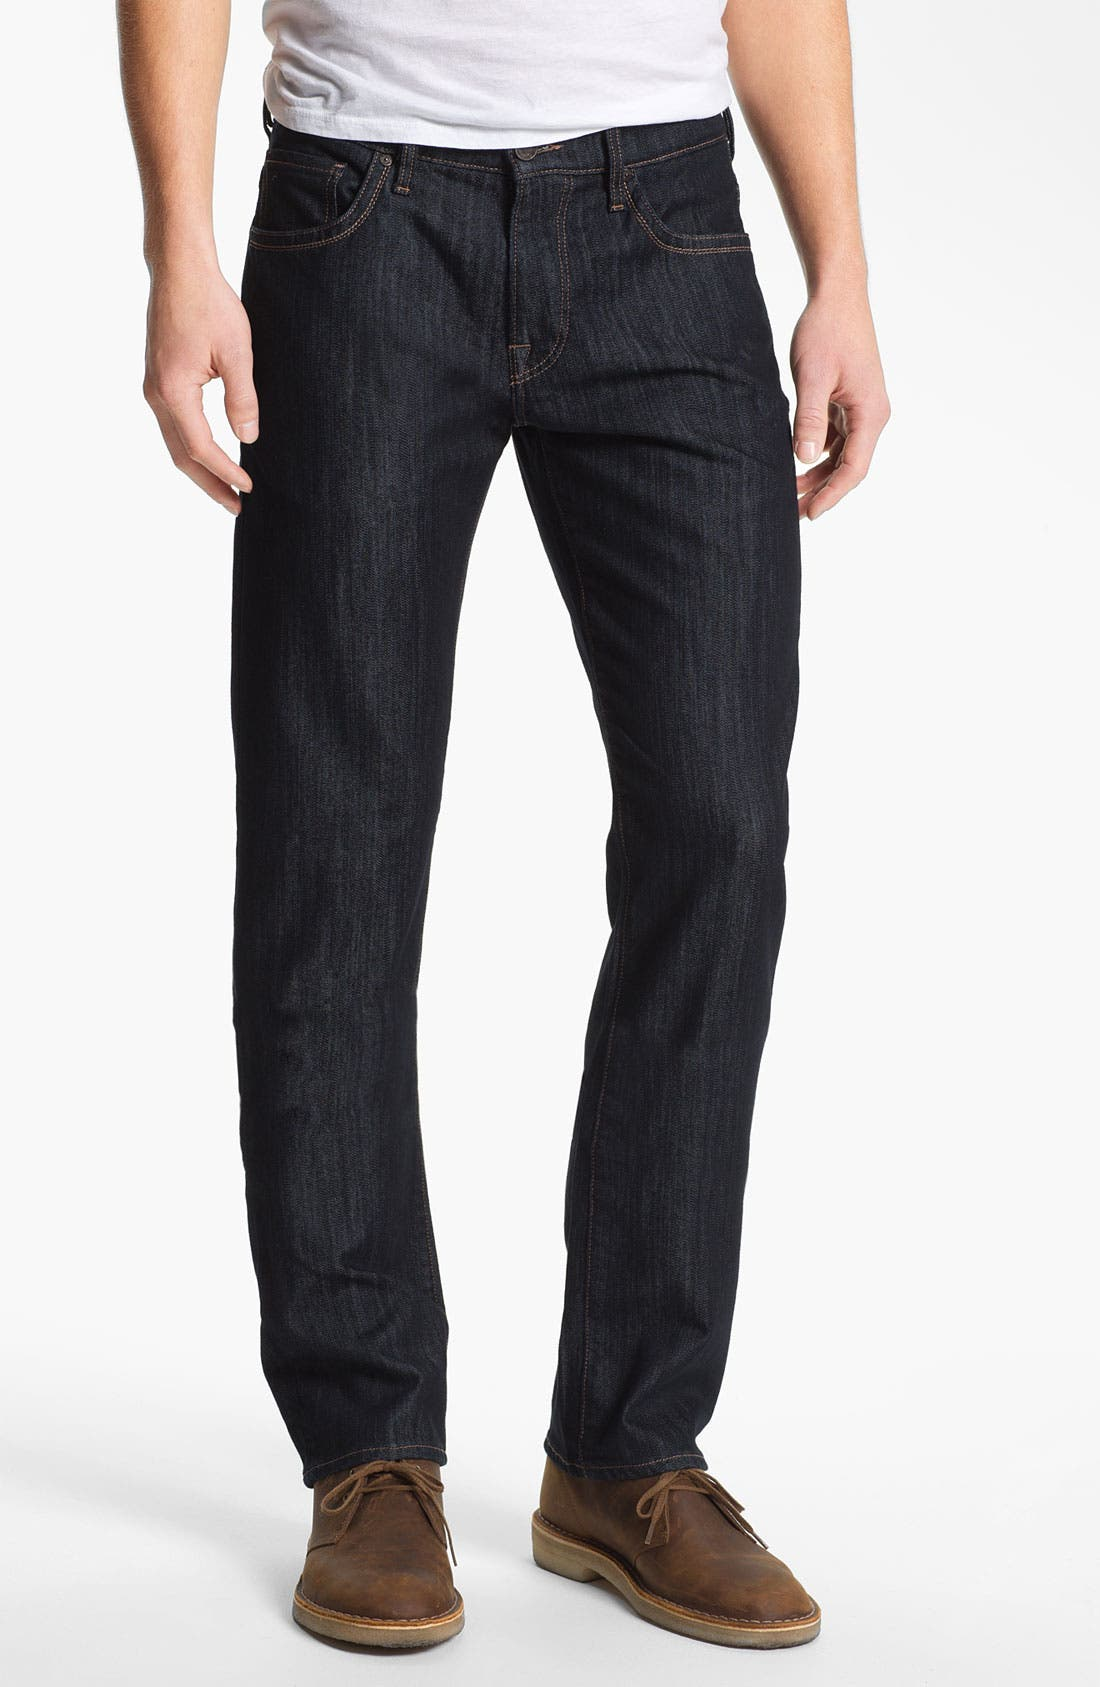 34 HERITAGE, 'Courage' Straight Leg Jeans, Main thumbnail 1, color, 425